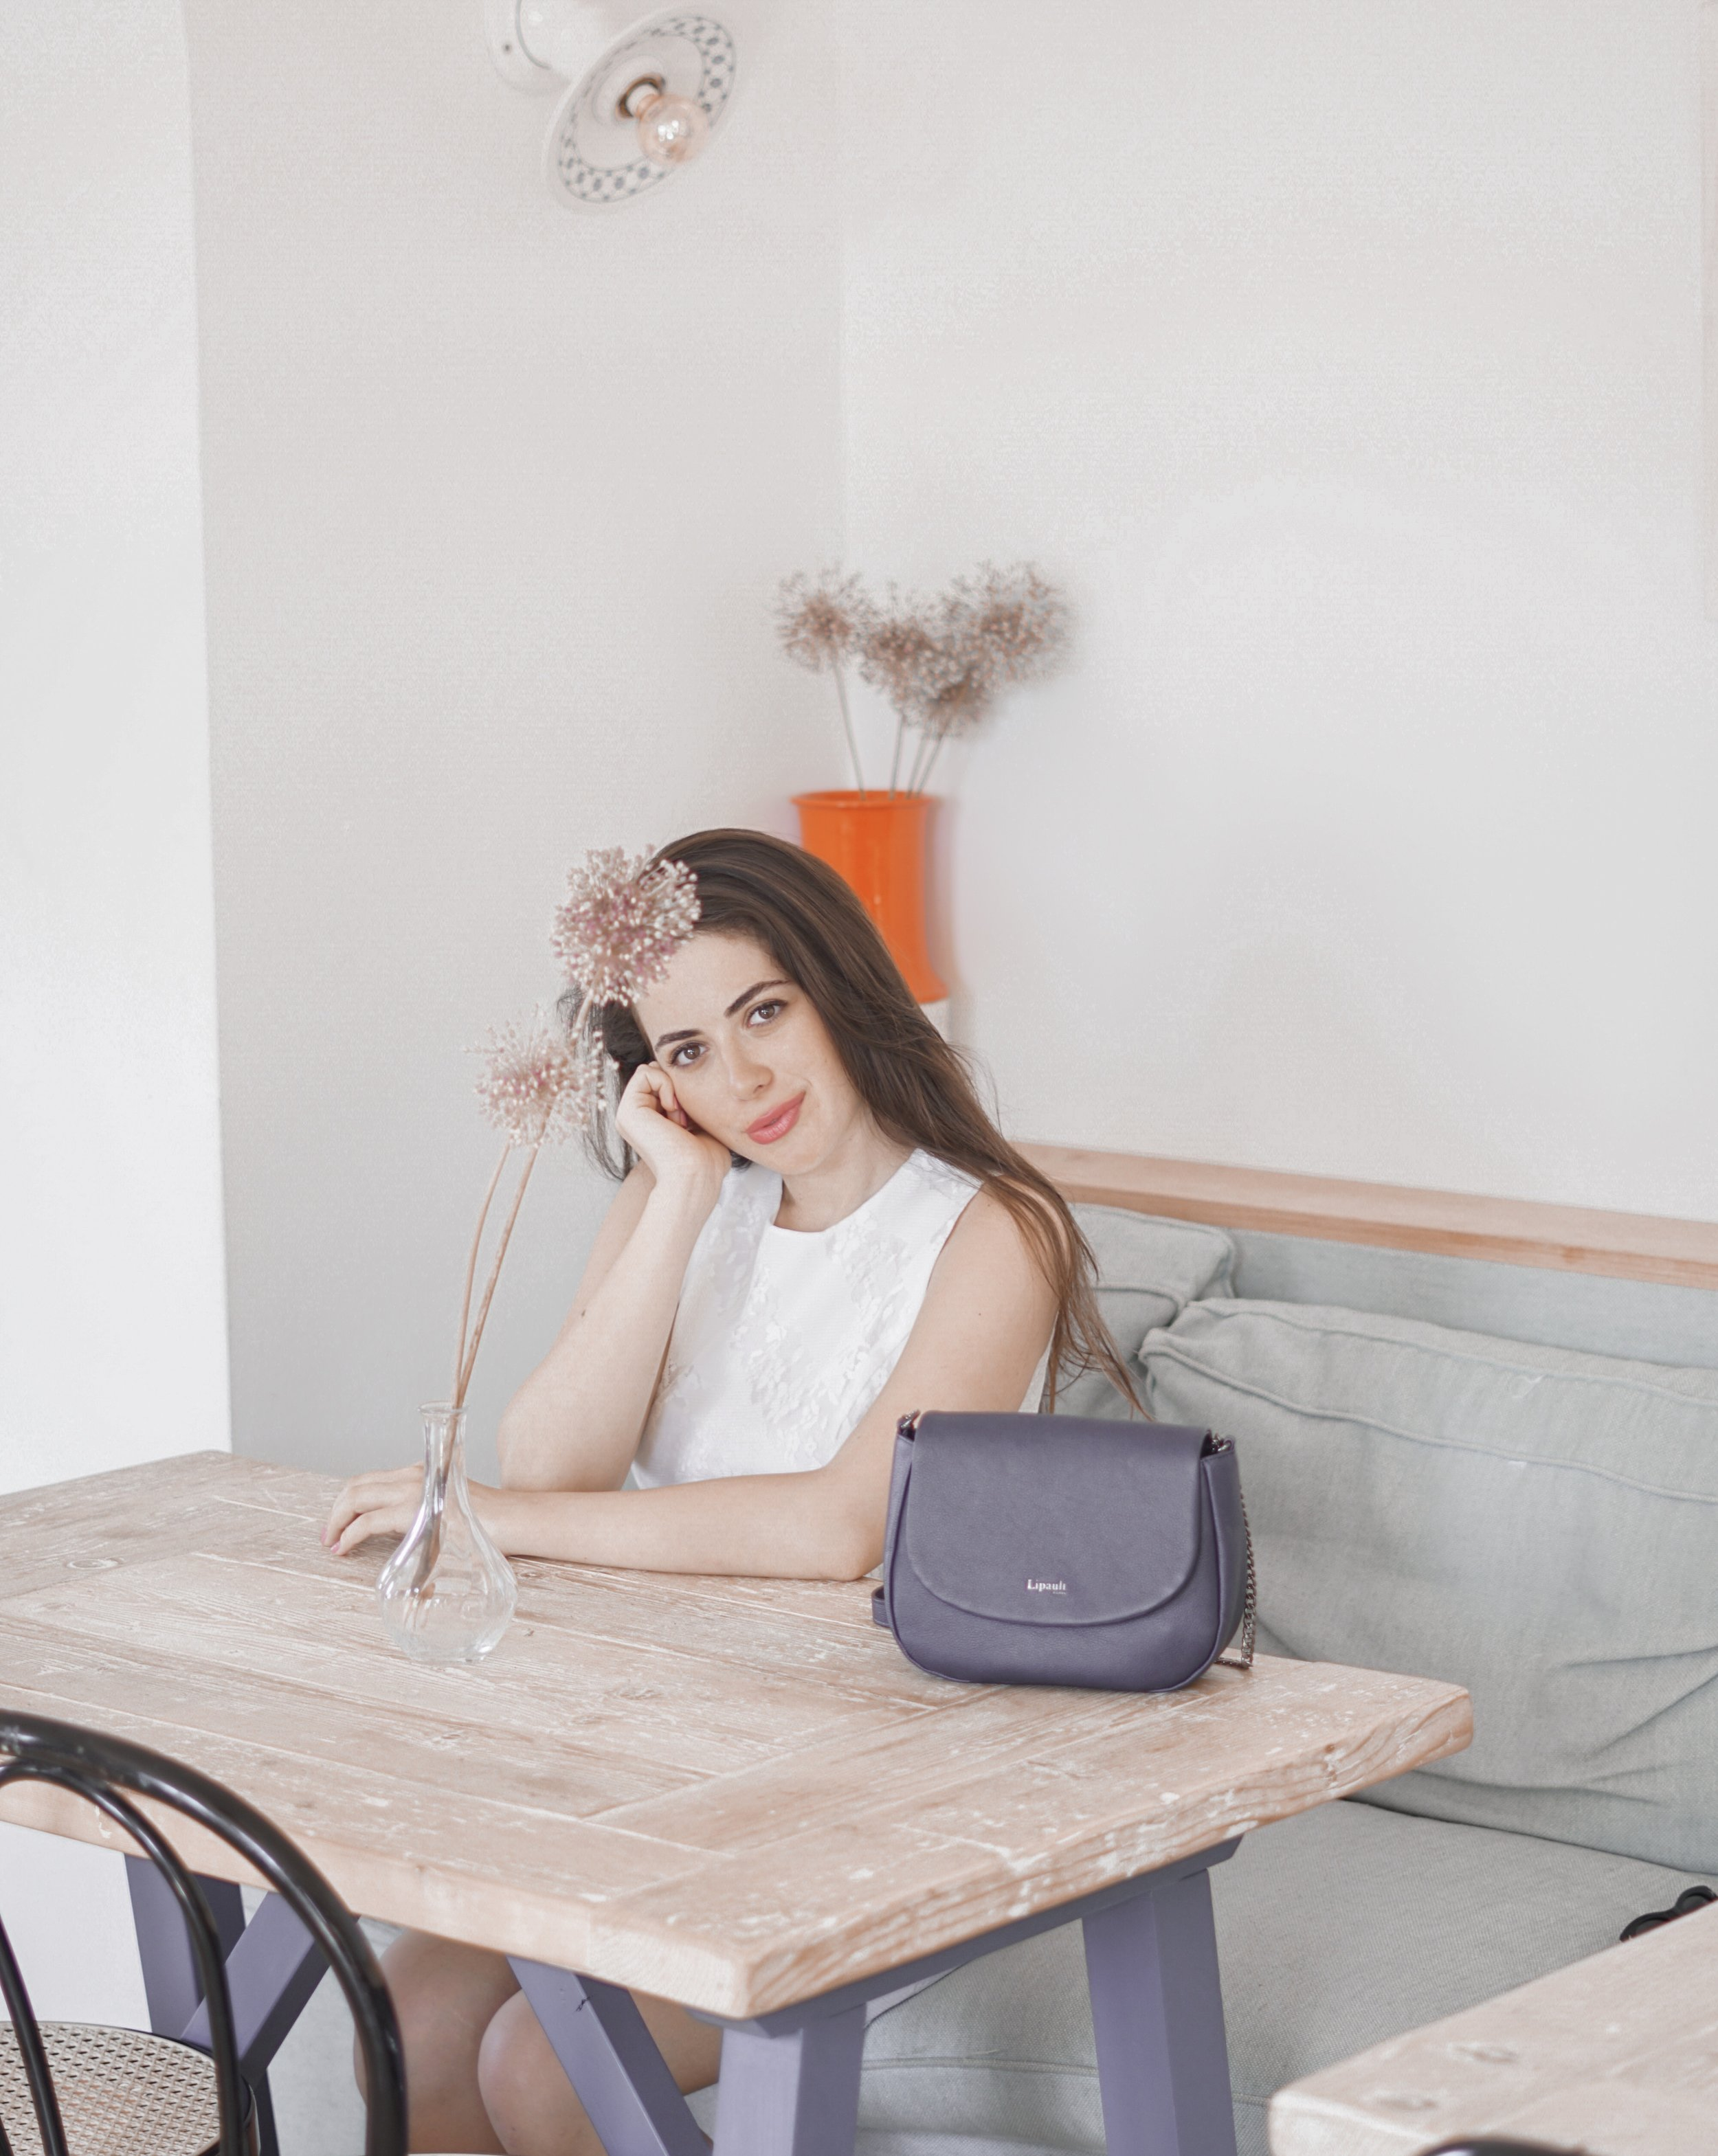 I took my Lipault bag to many locations with me as I loved it so much. Look at how cute and elegant it looks in photos as well!